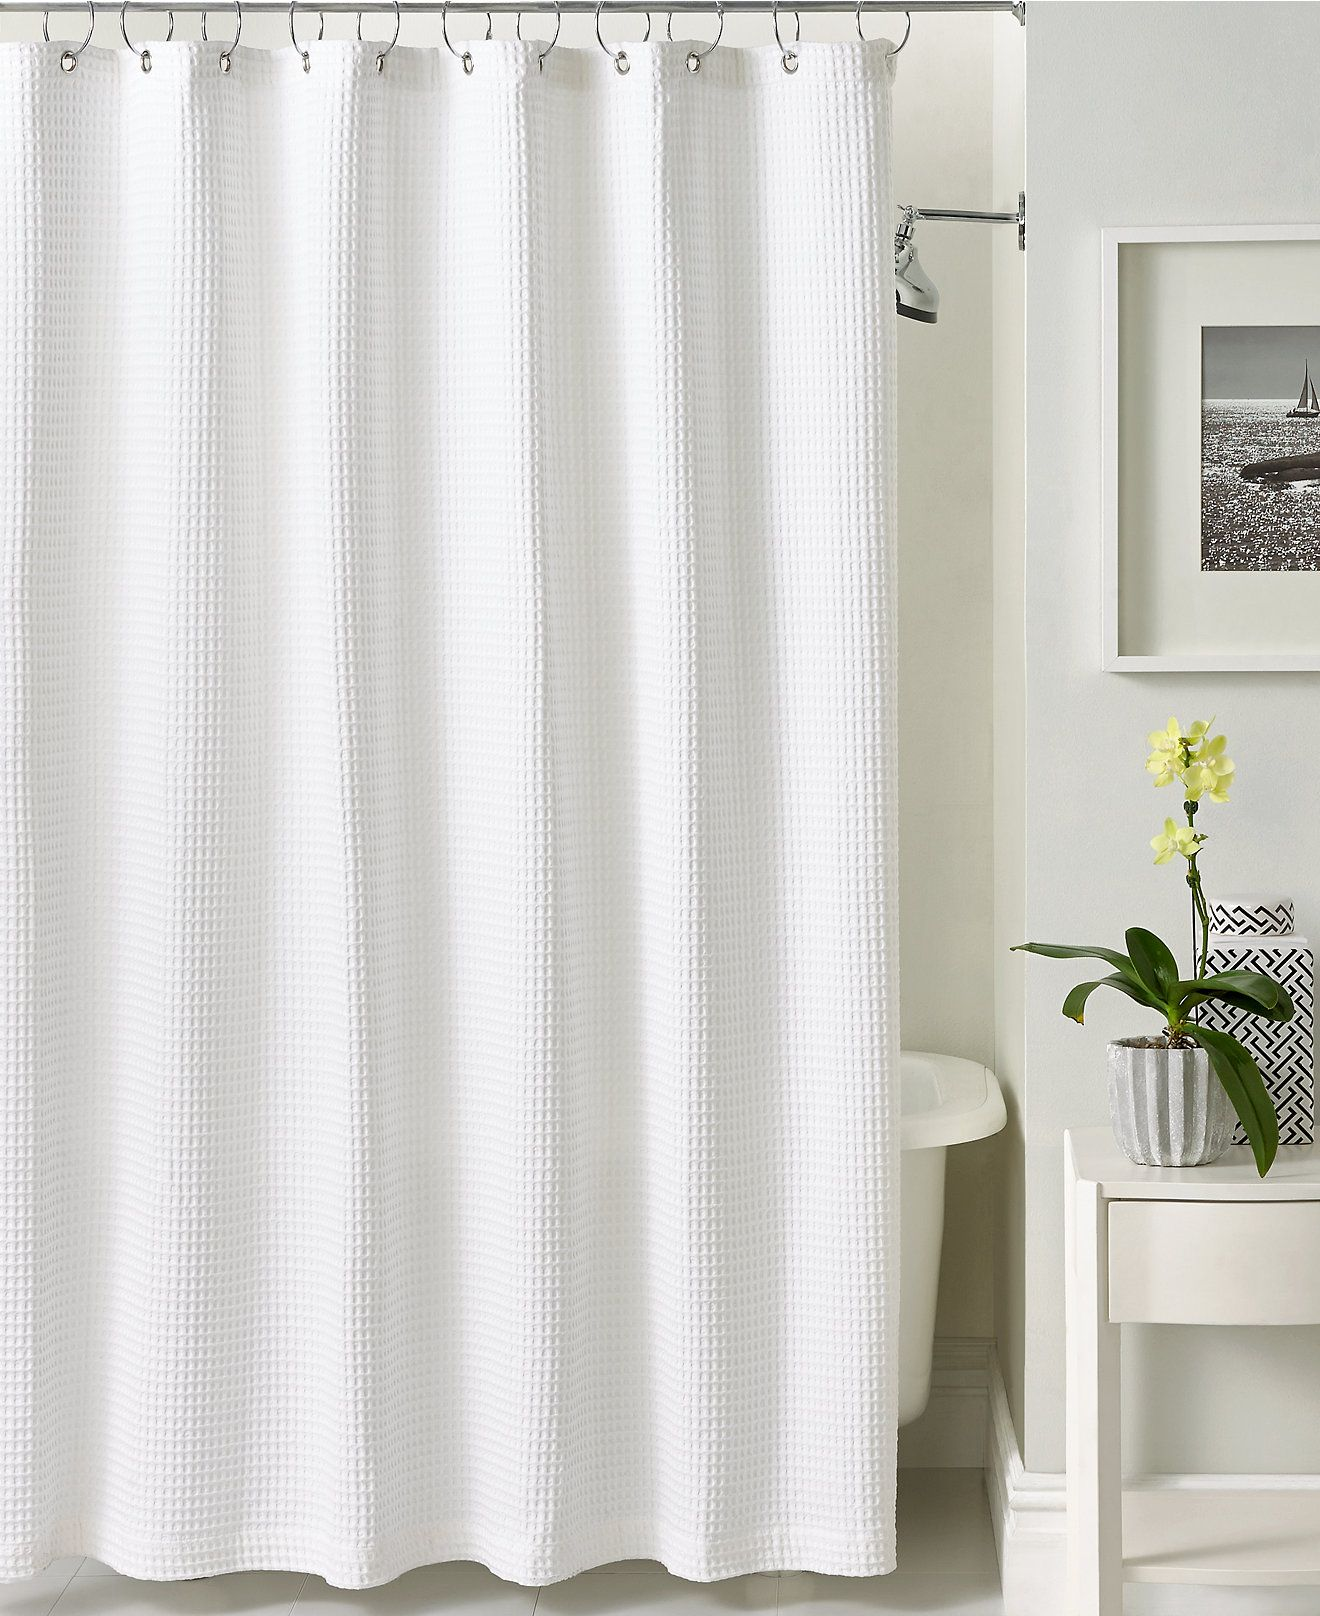 Hotel Collection Bath Accessories, Waffle Shower Curtain